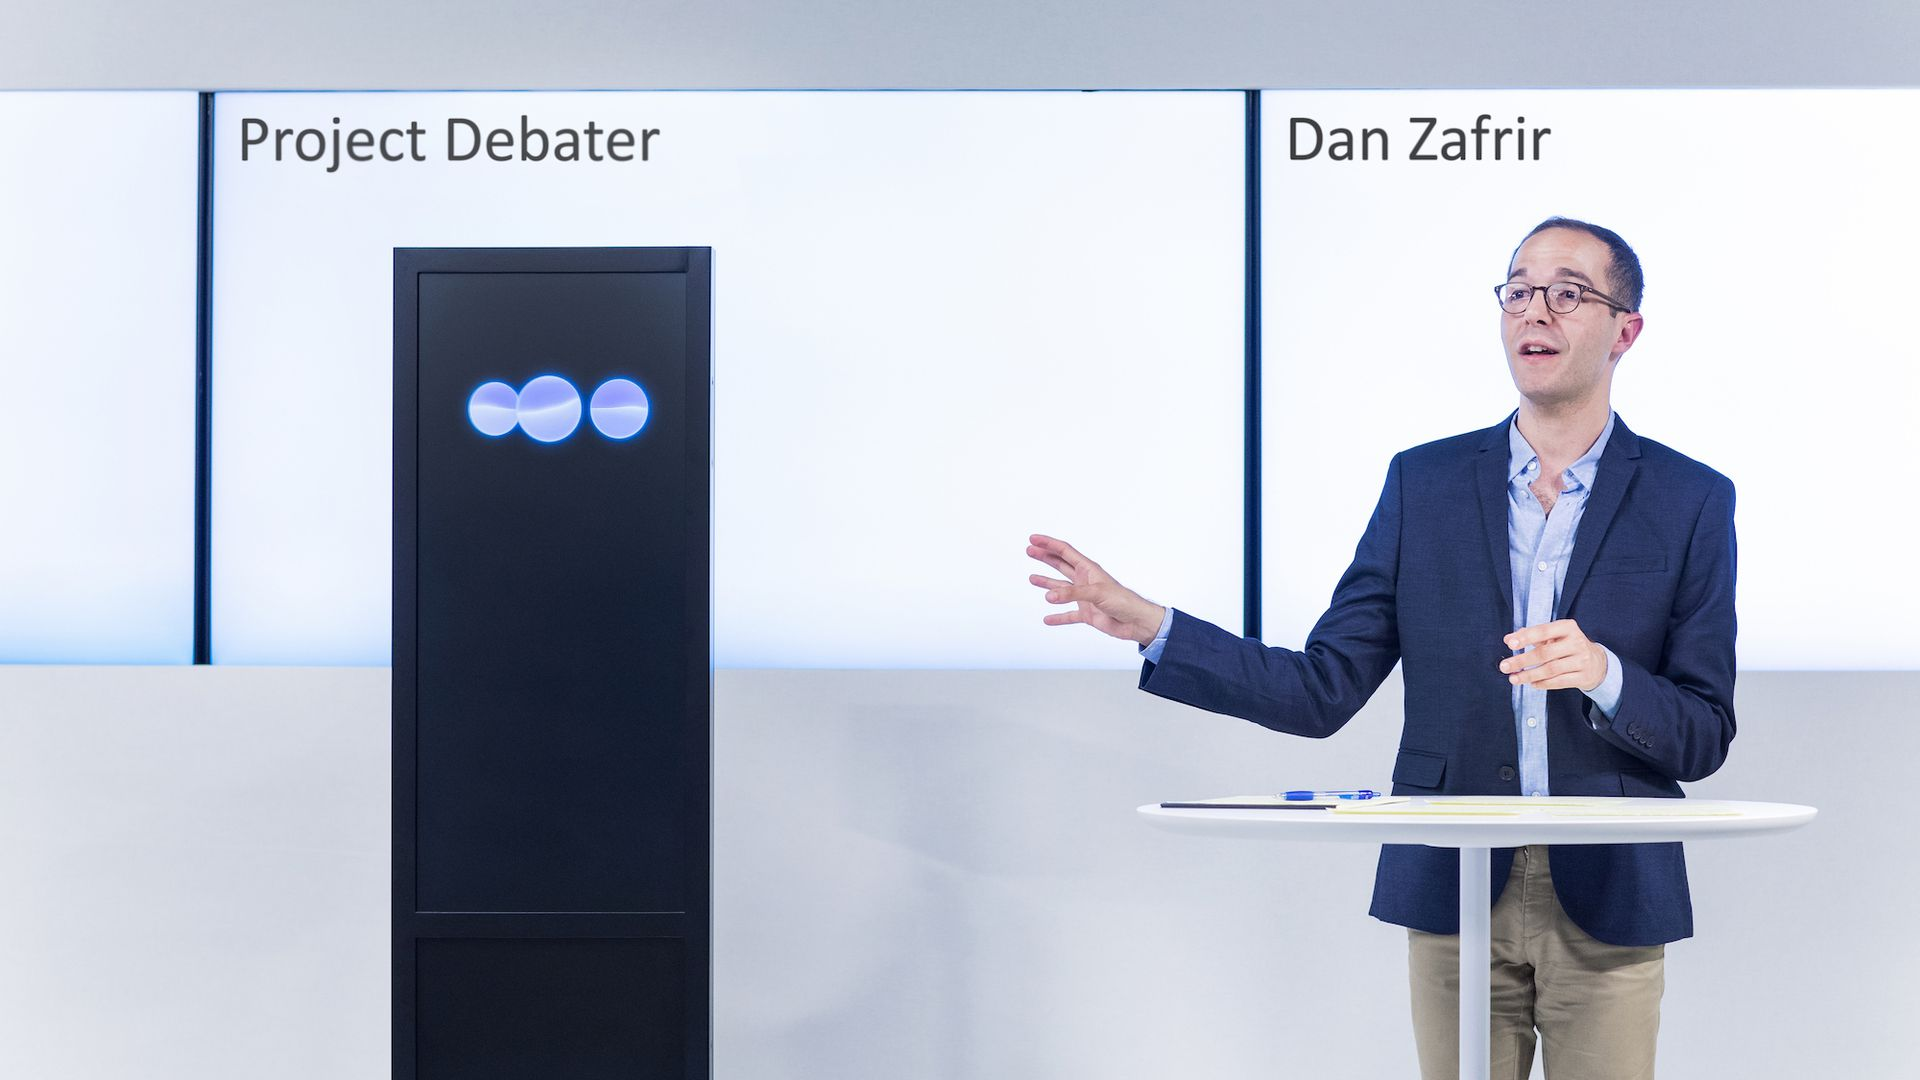 Human debater with box representing artificial intelligence debater